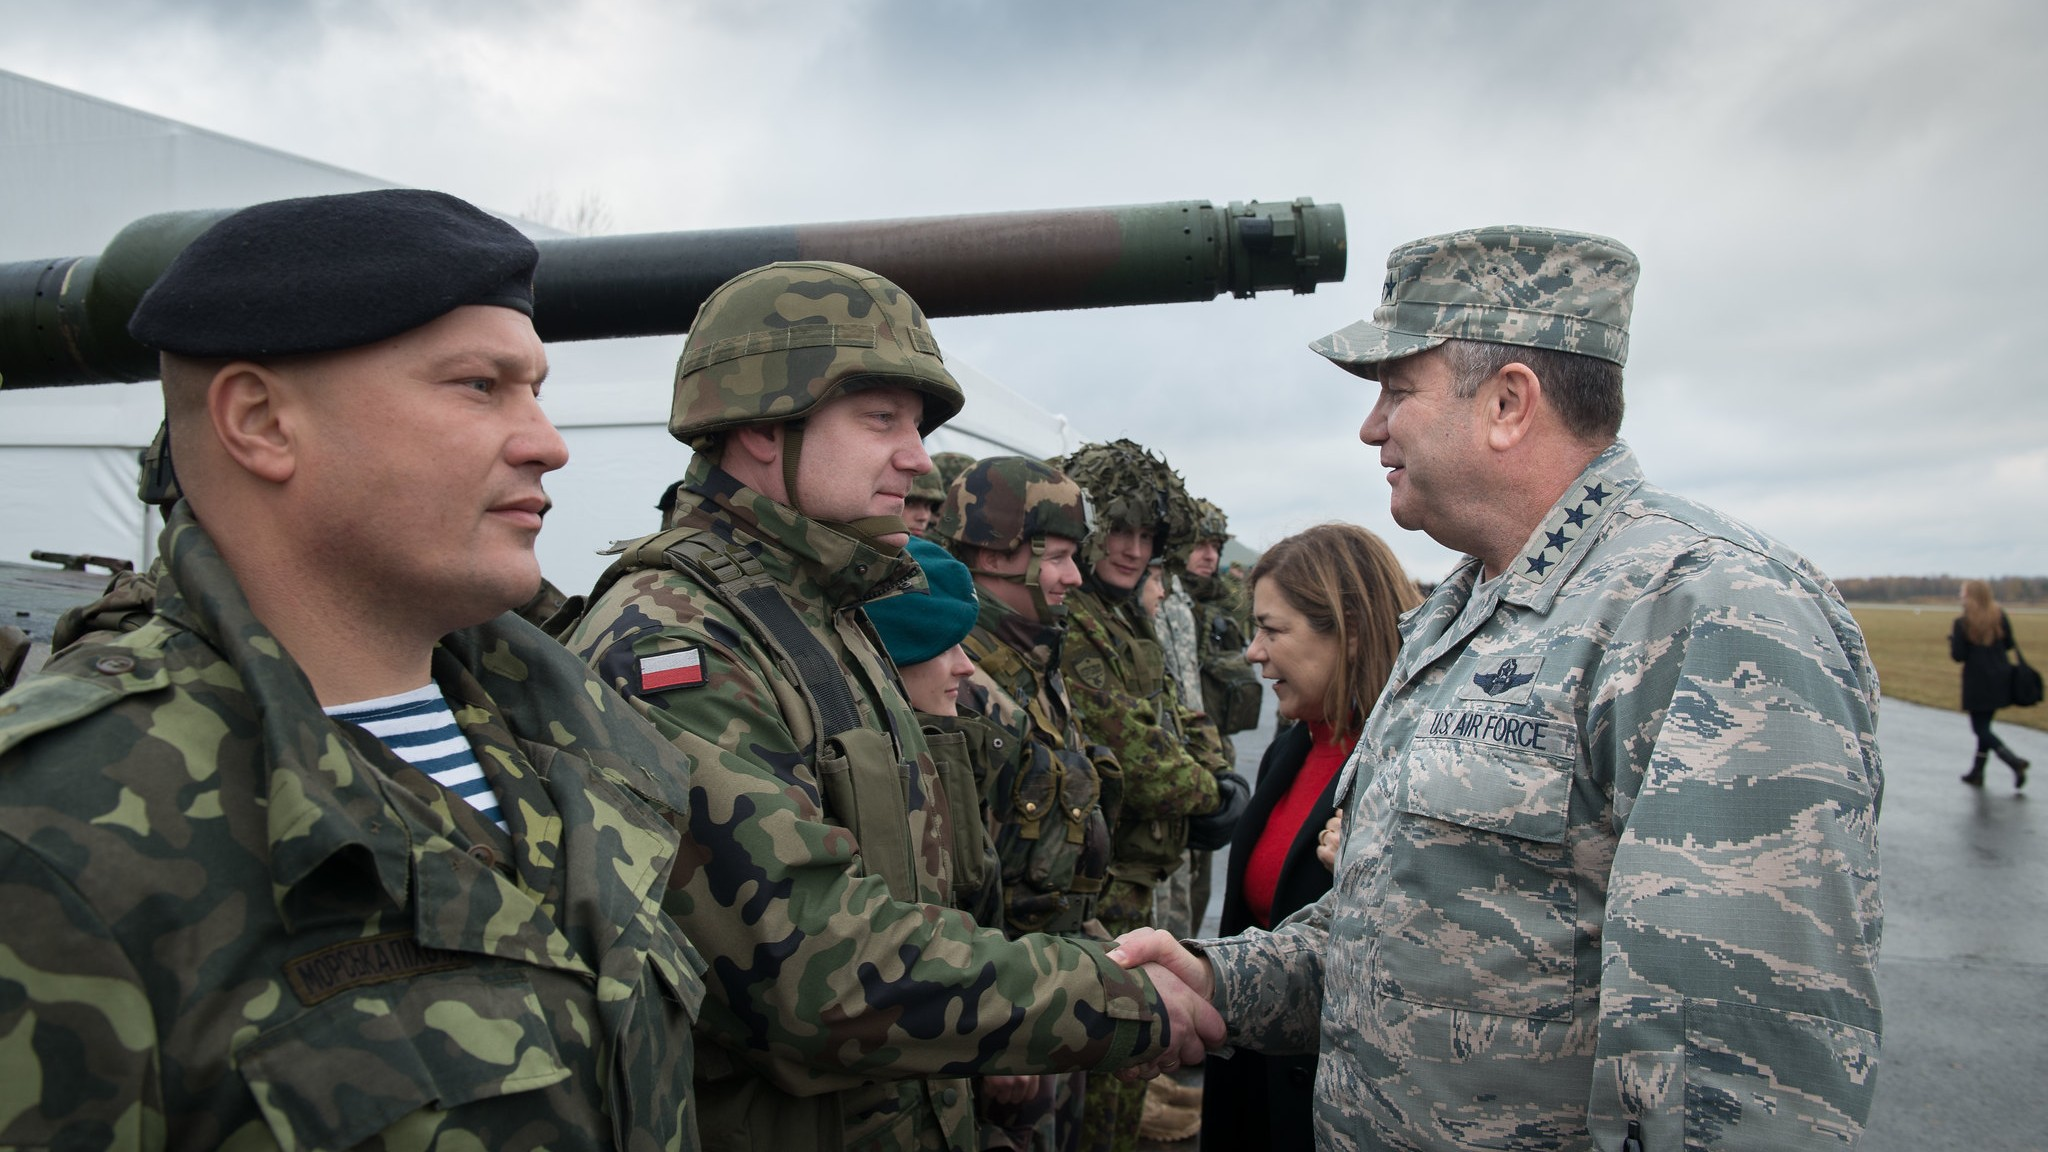 Photo:  Gen. Philip Breedlove (centre) US Air Force, Supreme Allied Commander Europe, meets with a Polish soldier at the Ziemsko Airfield, Poland, during Exercise Steadfast Jazz on Nov. 7, 2013. Credit: NATO